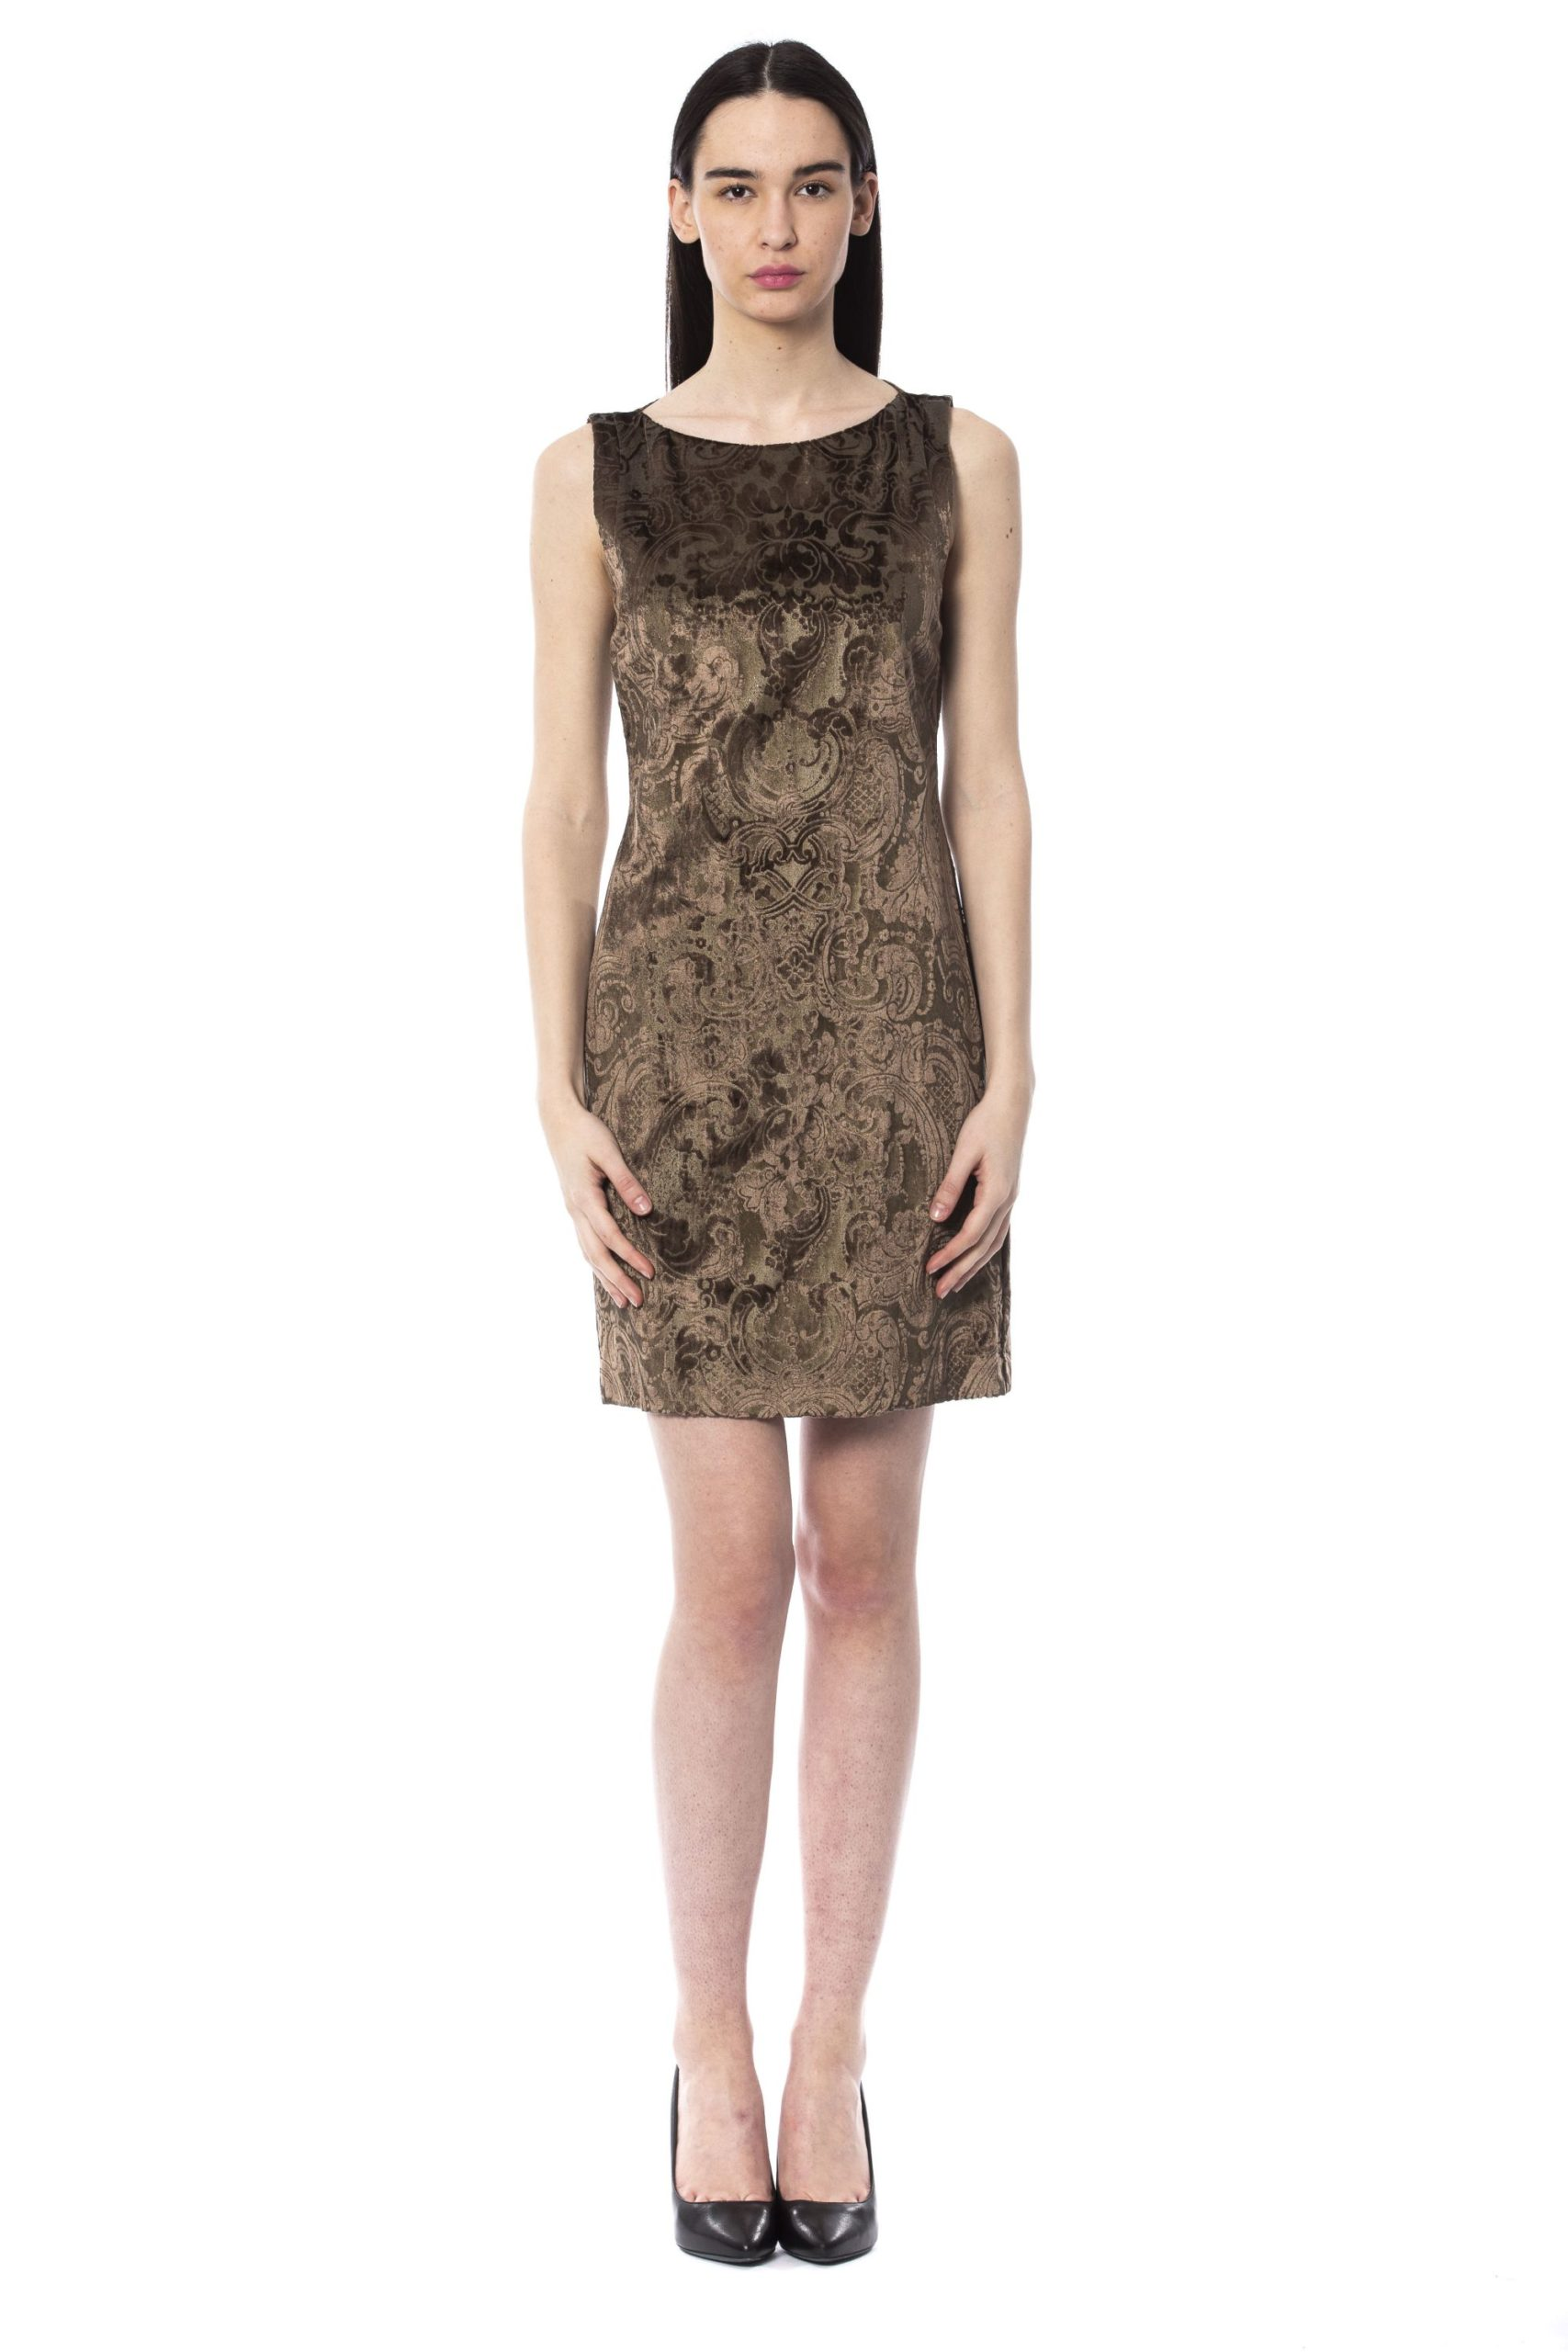 BYBLOS Women's Cacao Dress Brown BY994880 - IT44   M